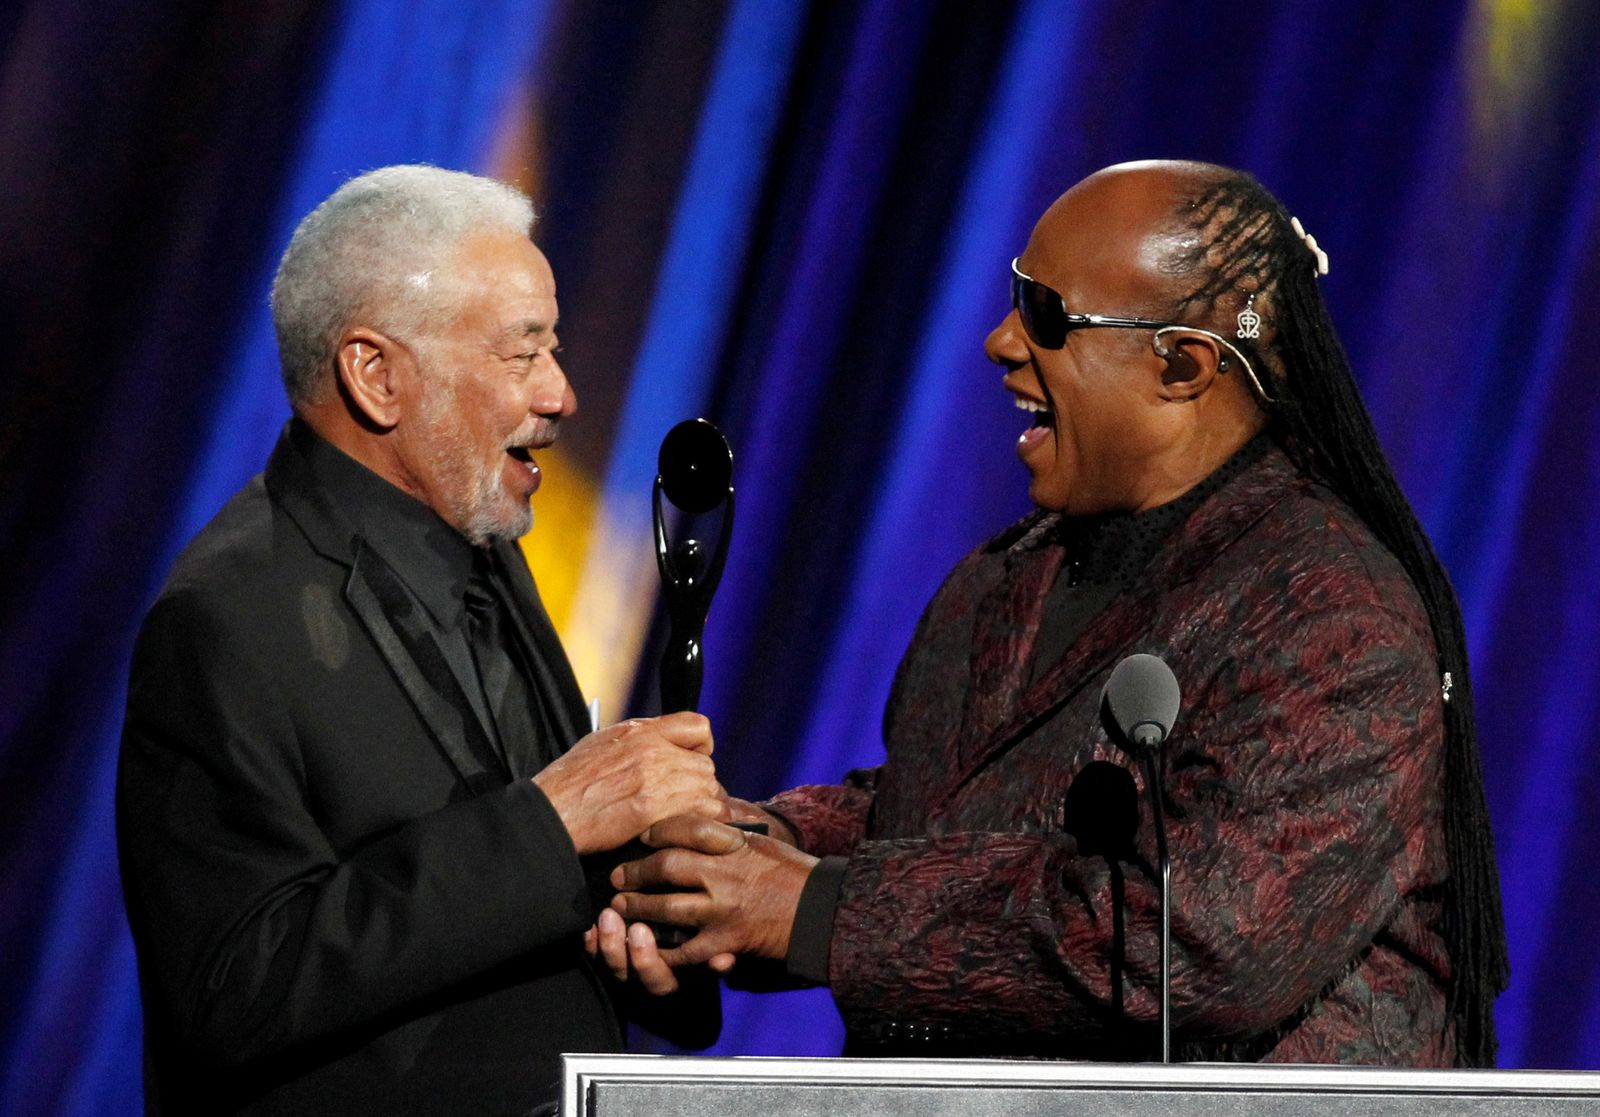 FILE PHOTO: Musician Withers is inducted by Wonder during the 2015 Rock and Roll Hall of Fame Induction Ceremony in Cleveland